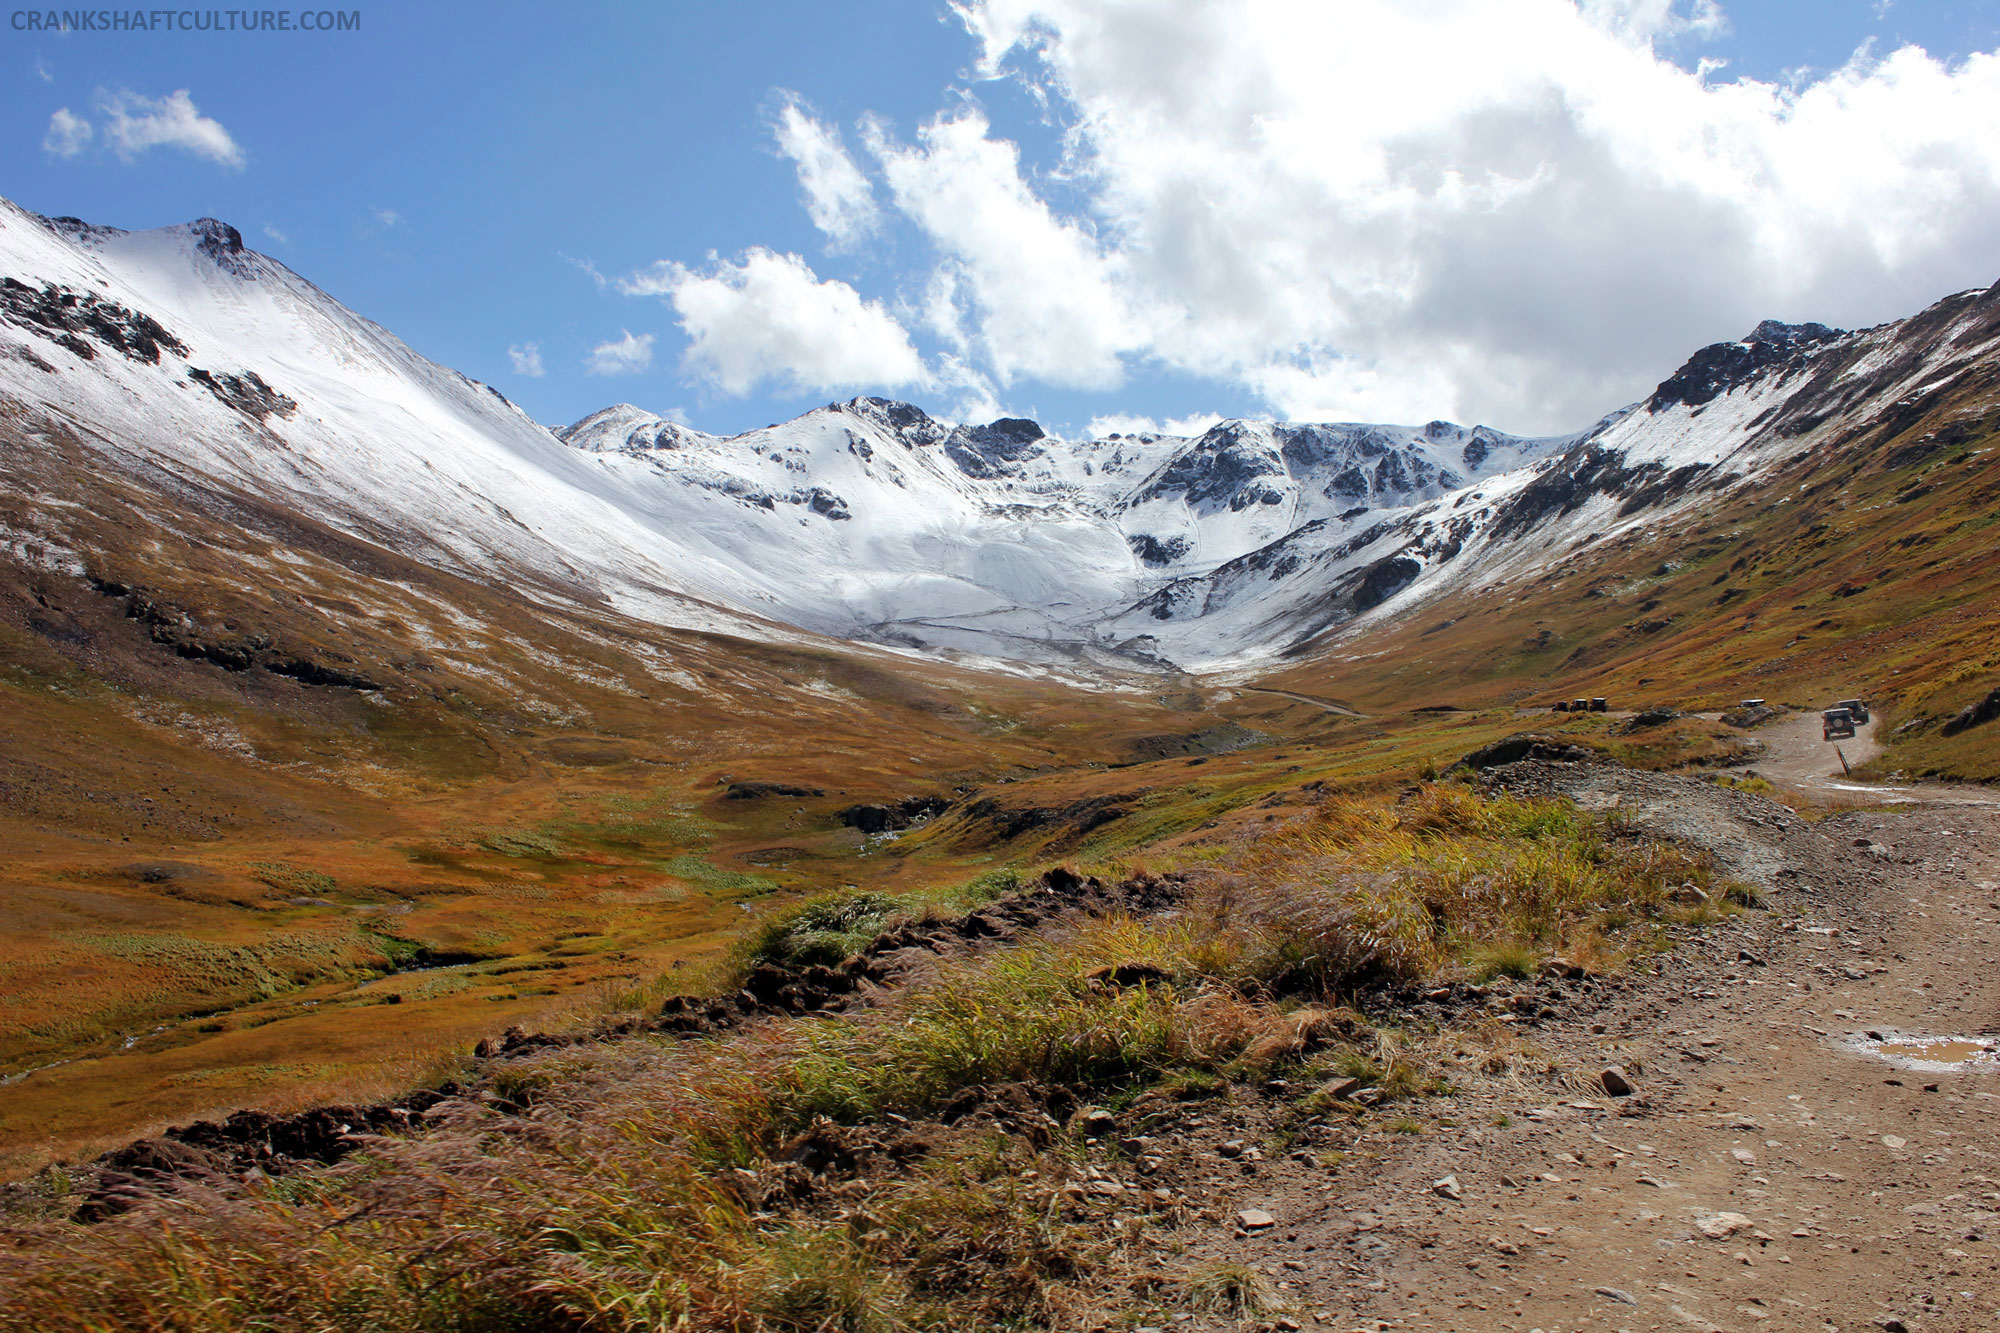 ae4cac2a4eb The ultra-scenic California Basin acts as a huge bowl in the San Juan  Mountains